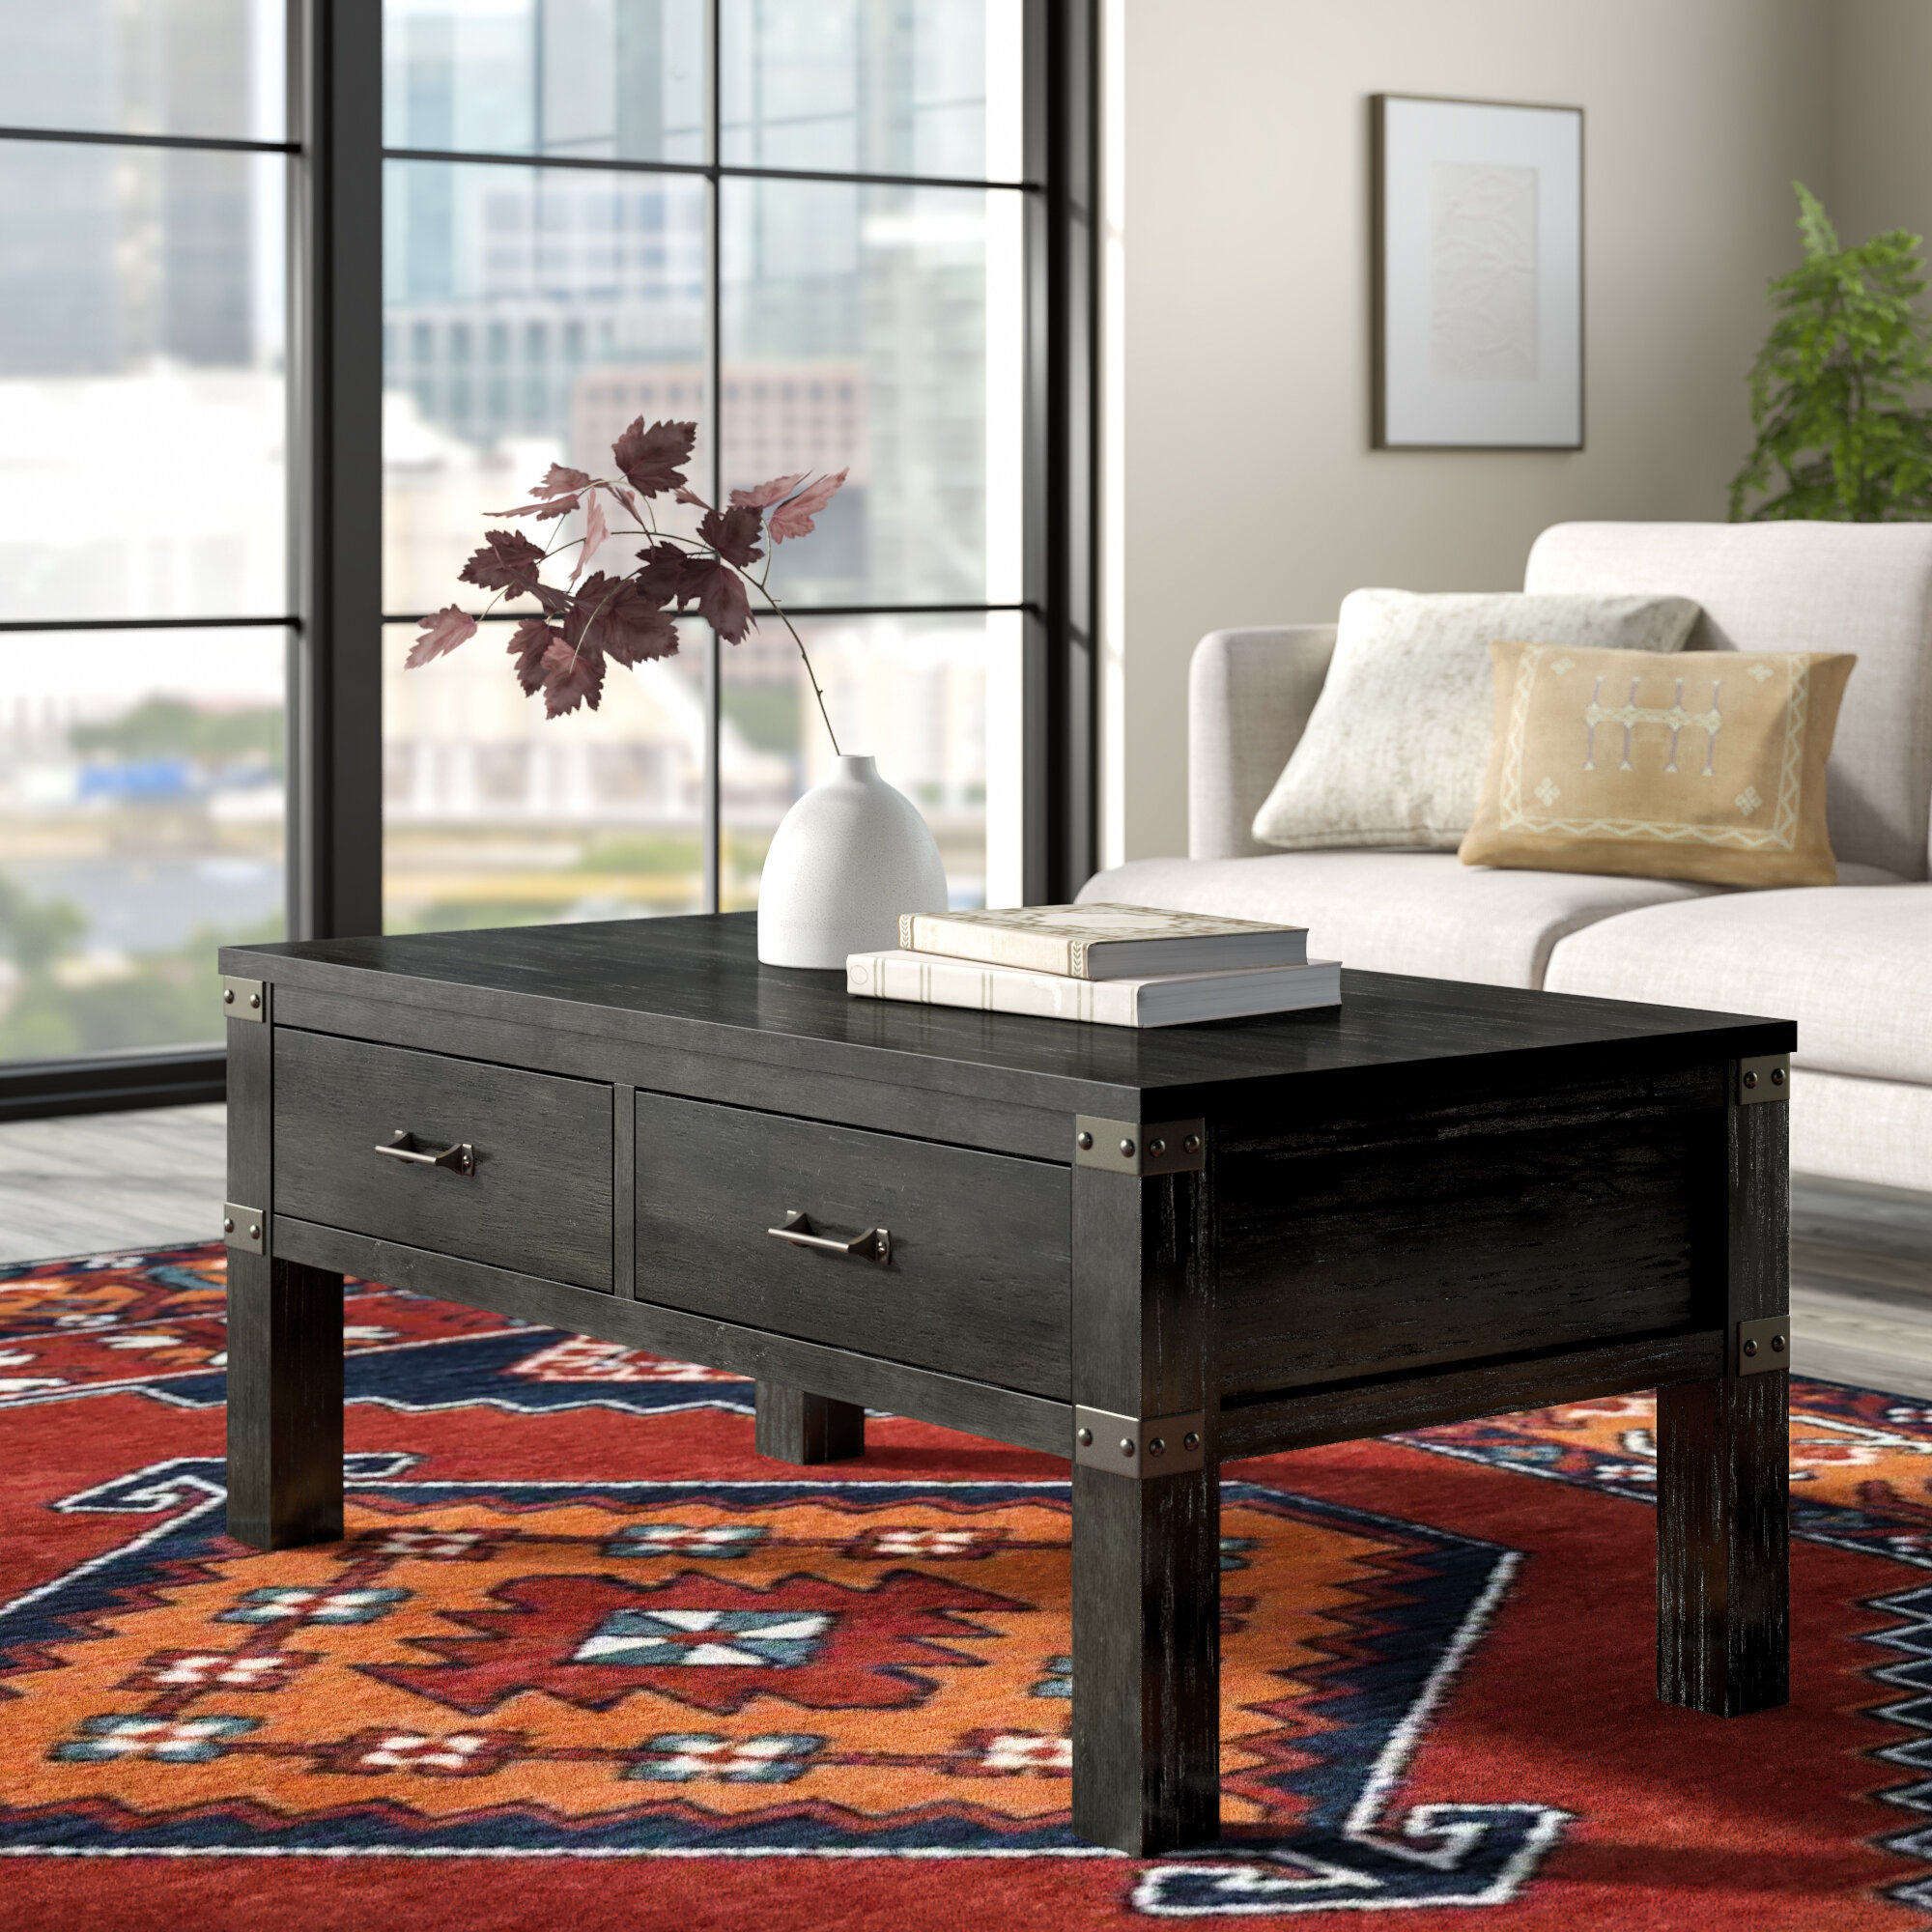 Union Rustic Kaitlin Coffee Table With Storage Reviews Wayfair